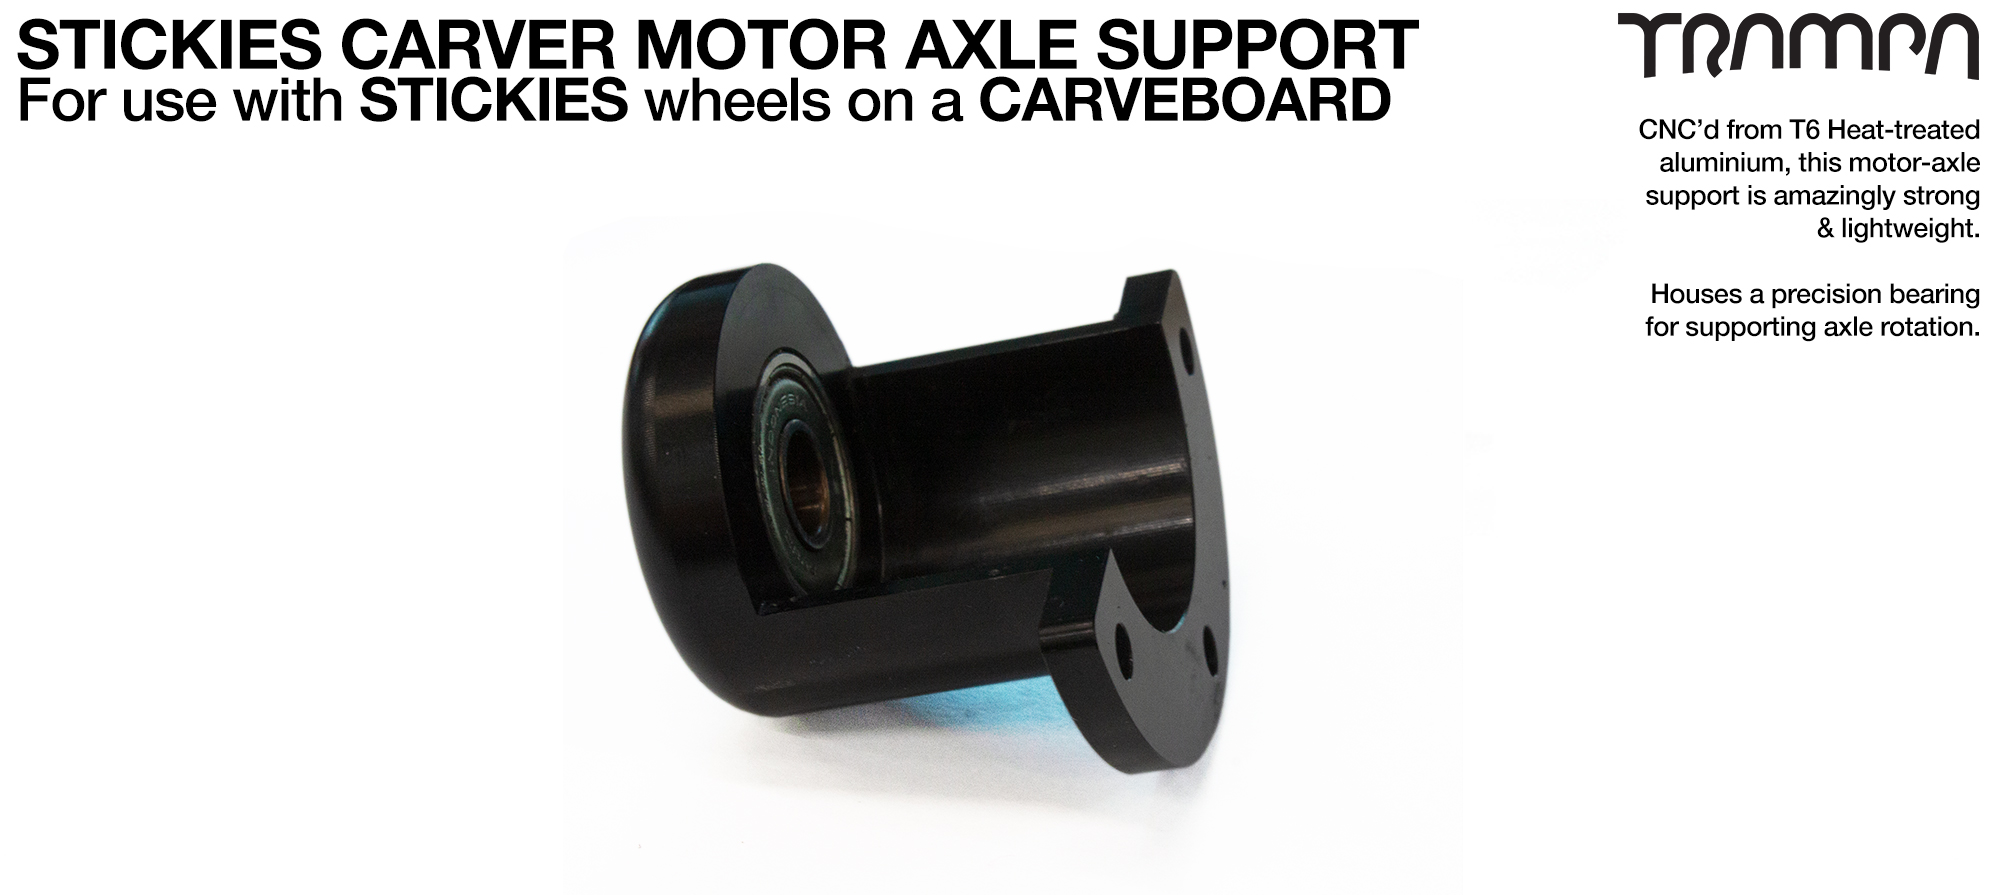 Motor Axle Support for STICKIES & GUMMIES Wheels